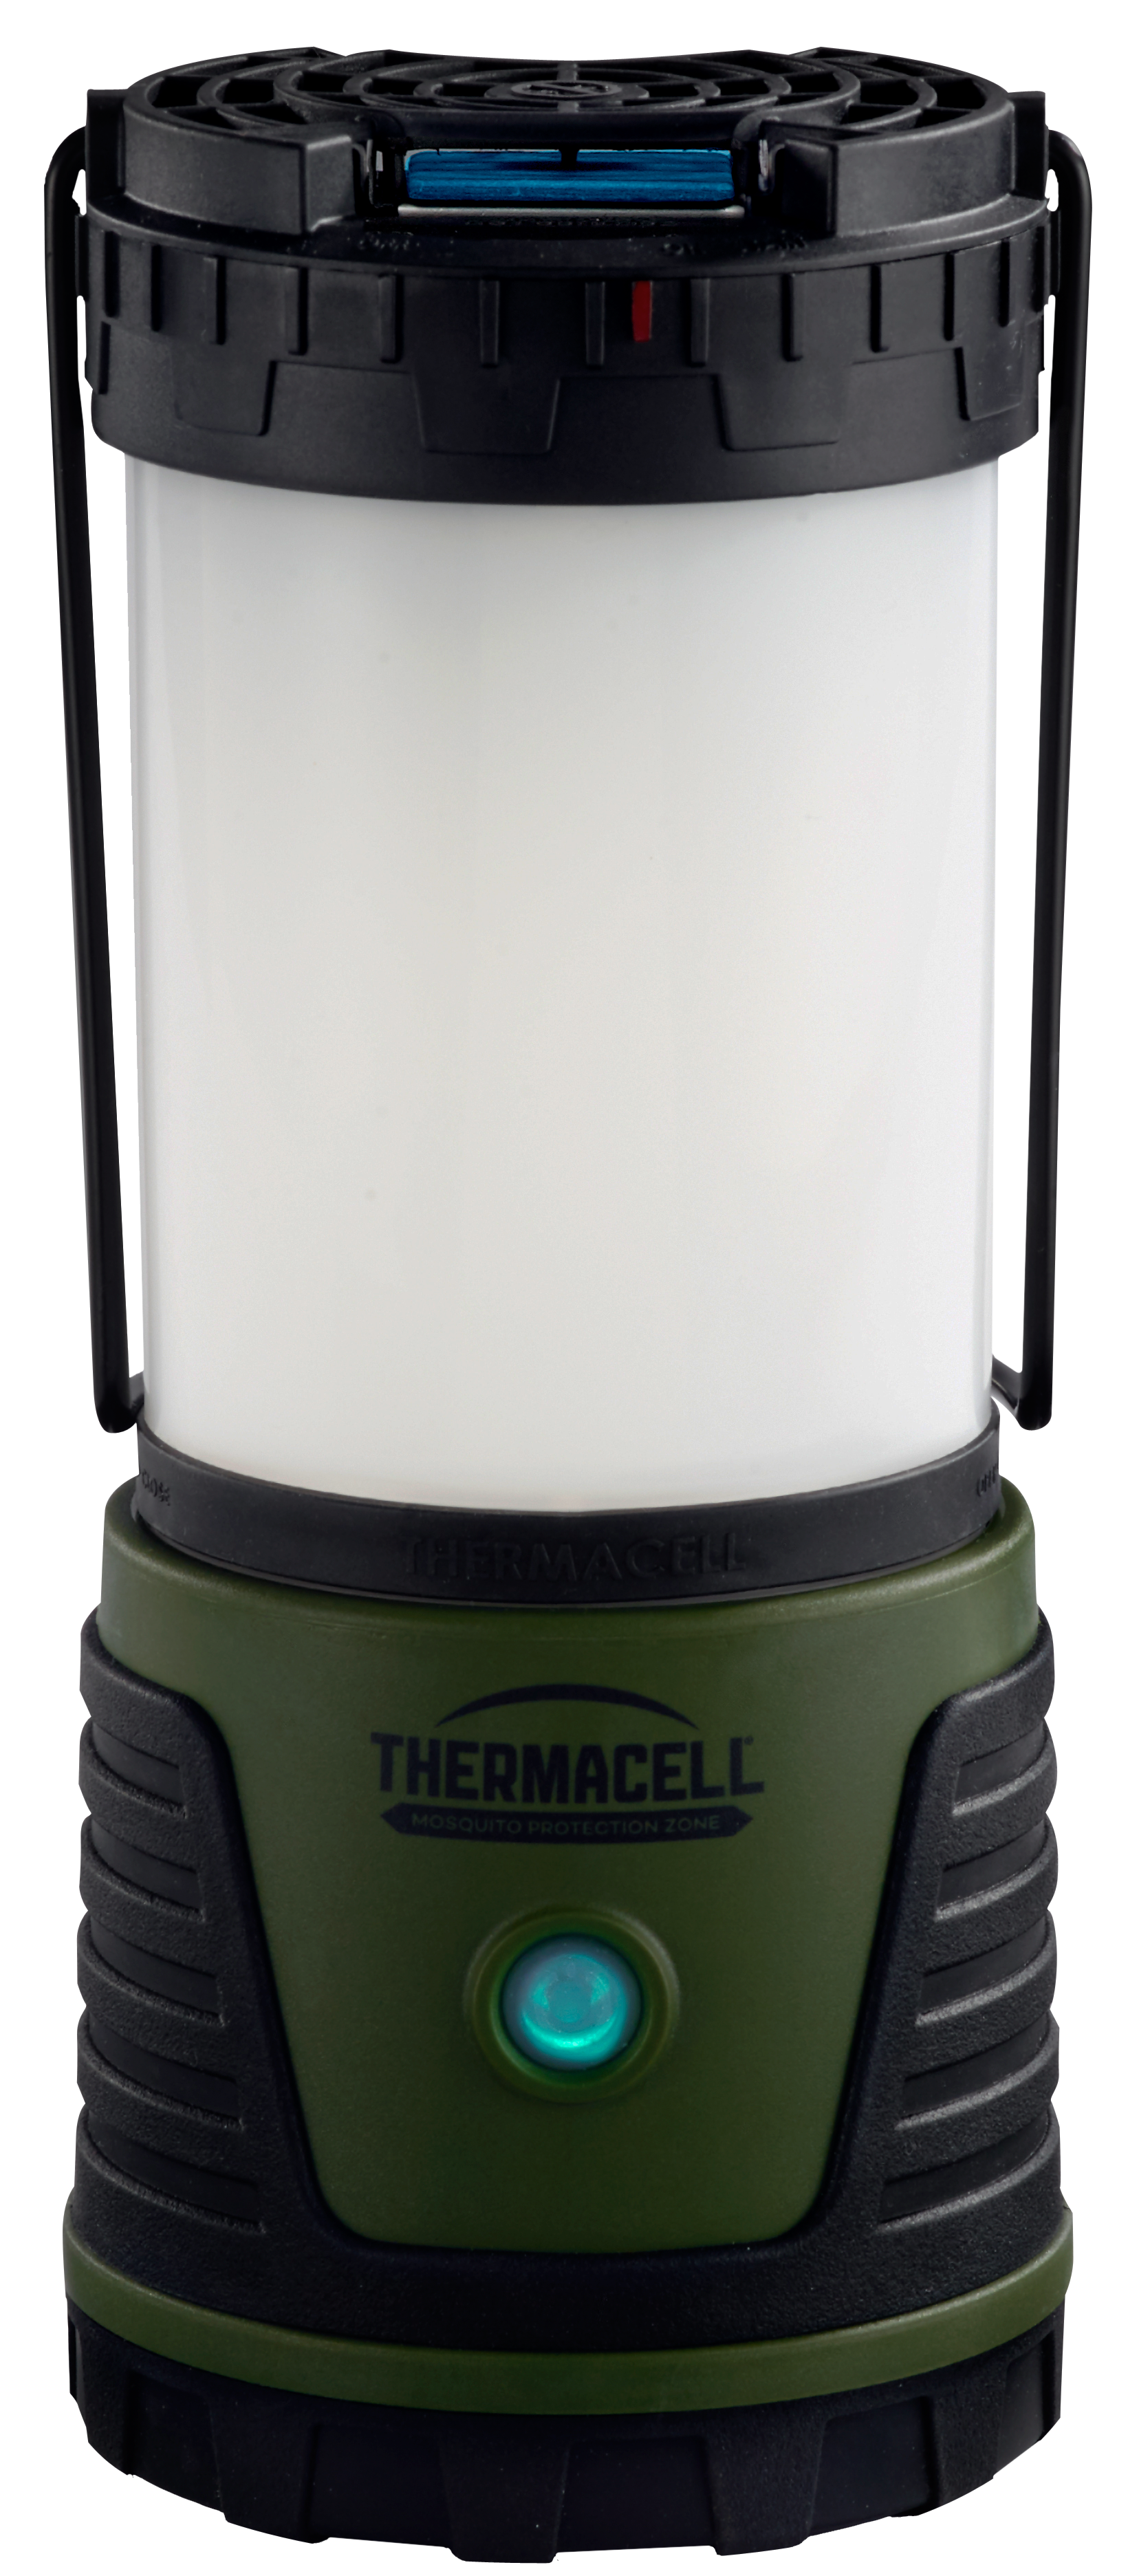 Thermacell MRCL Repellent Camp Lantern 300 Lumens Shields 15x15'''' Are